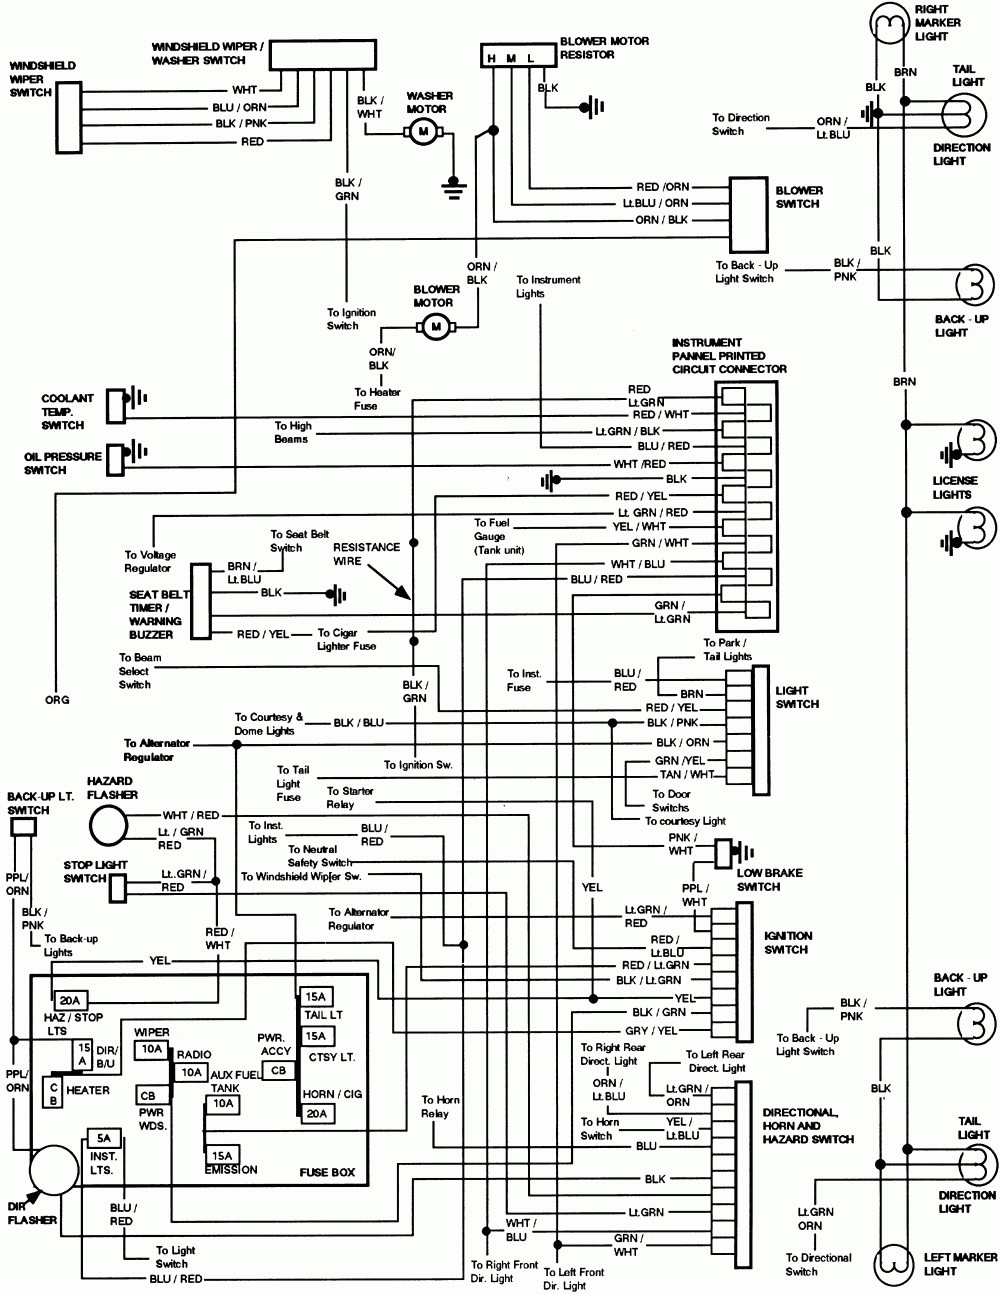 1991 Ford F 250 Wiring Diagram Wiring Diagrams Source